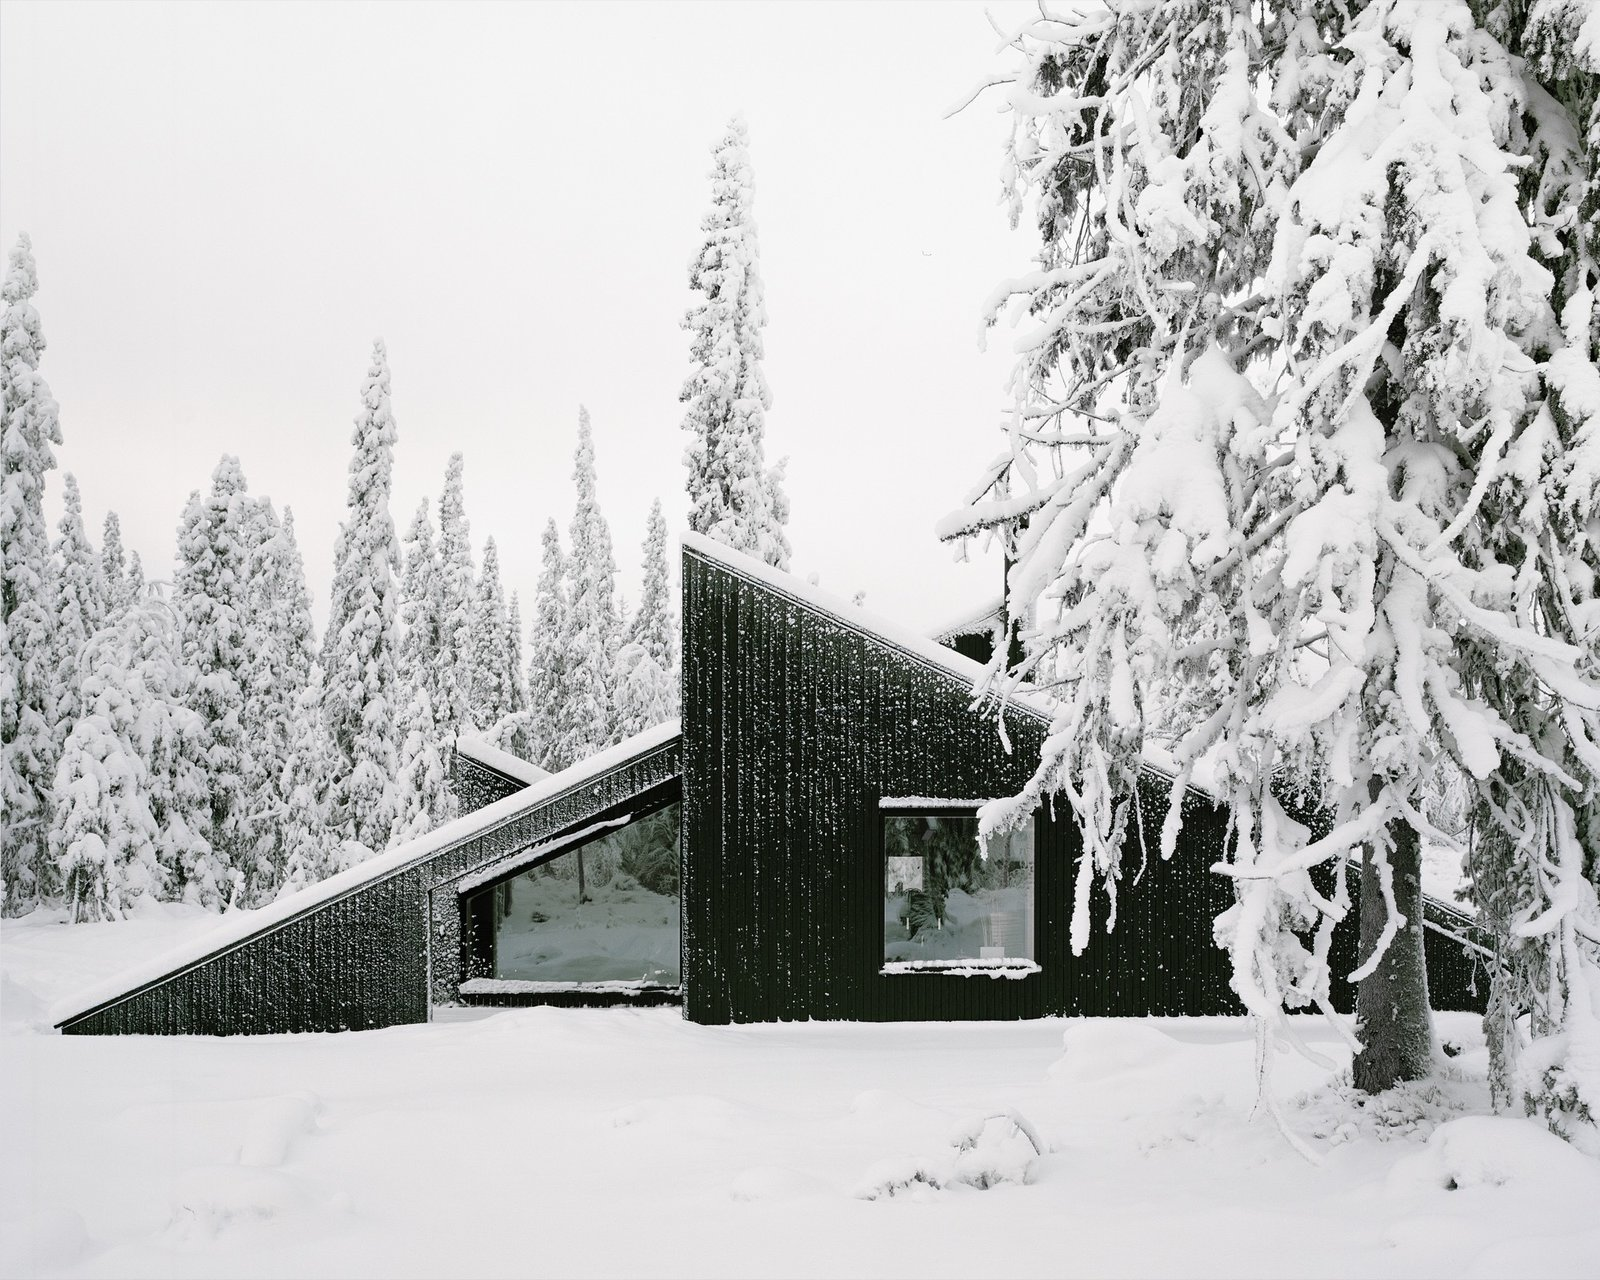 Exterior, Shed RoofLine, House Building Type, Metal Roof Material, and Wood Siding Material The cabin's concept was simple: To create a cabin that is small and sparse yet spatially rich. The 55-square-meter (592-square-foot) cabin, commissioned by a private client and completed in 2016, comprises a large living room, bedroom, ski room, and small annex with a utility room. It functions off the water and electricity grids.